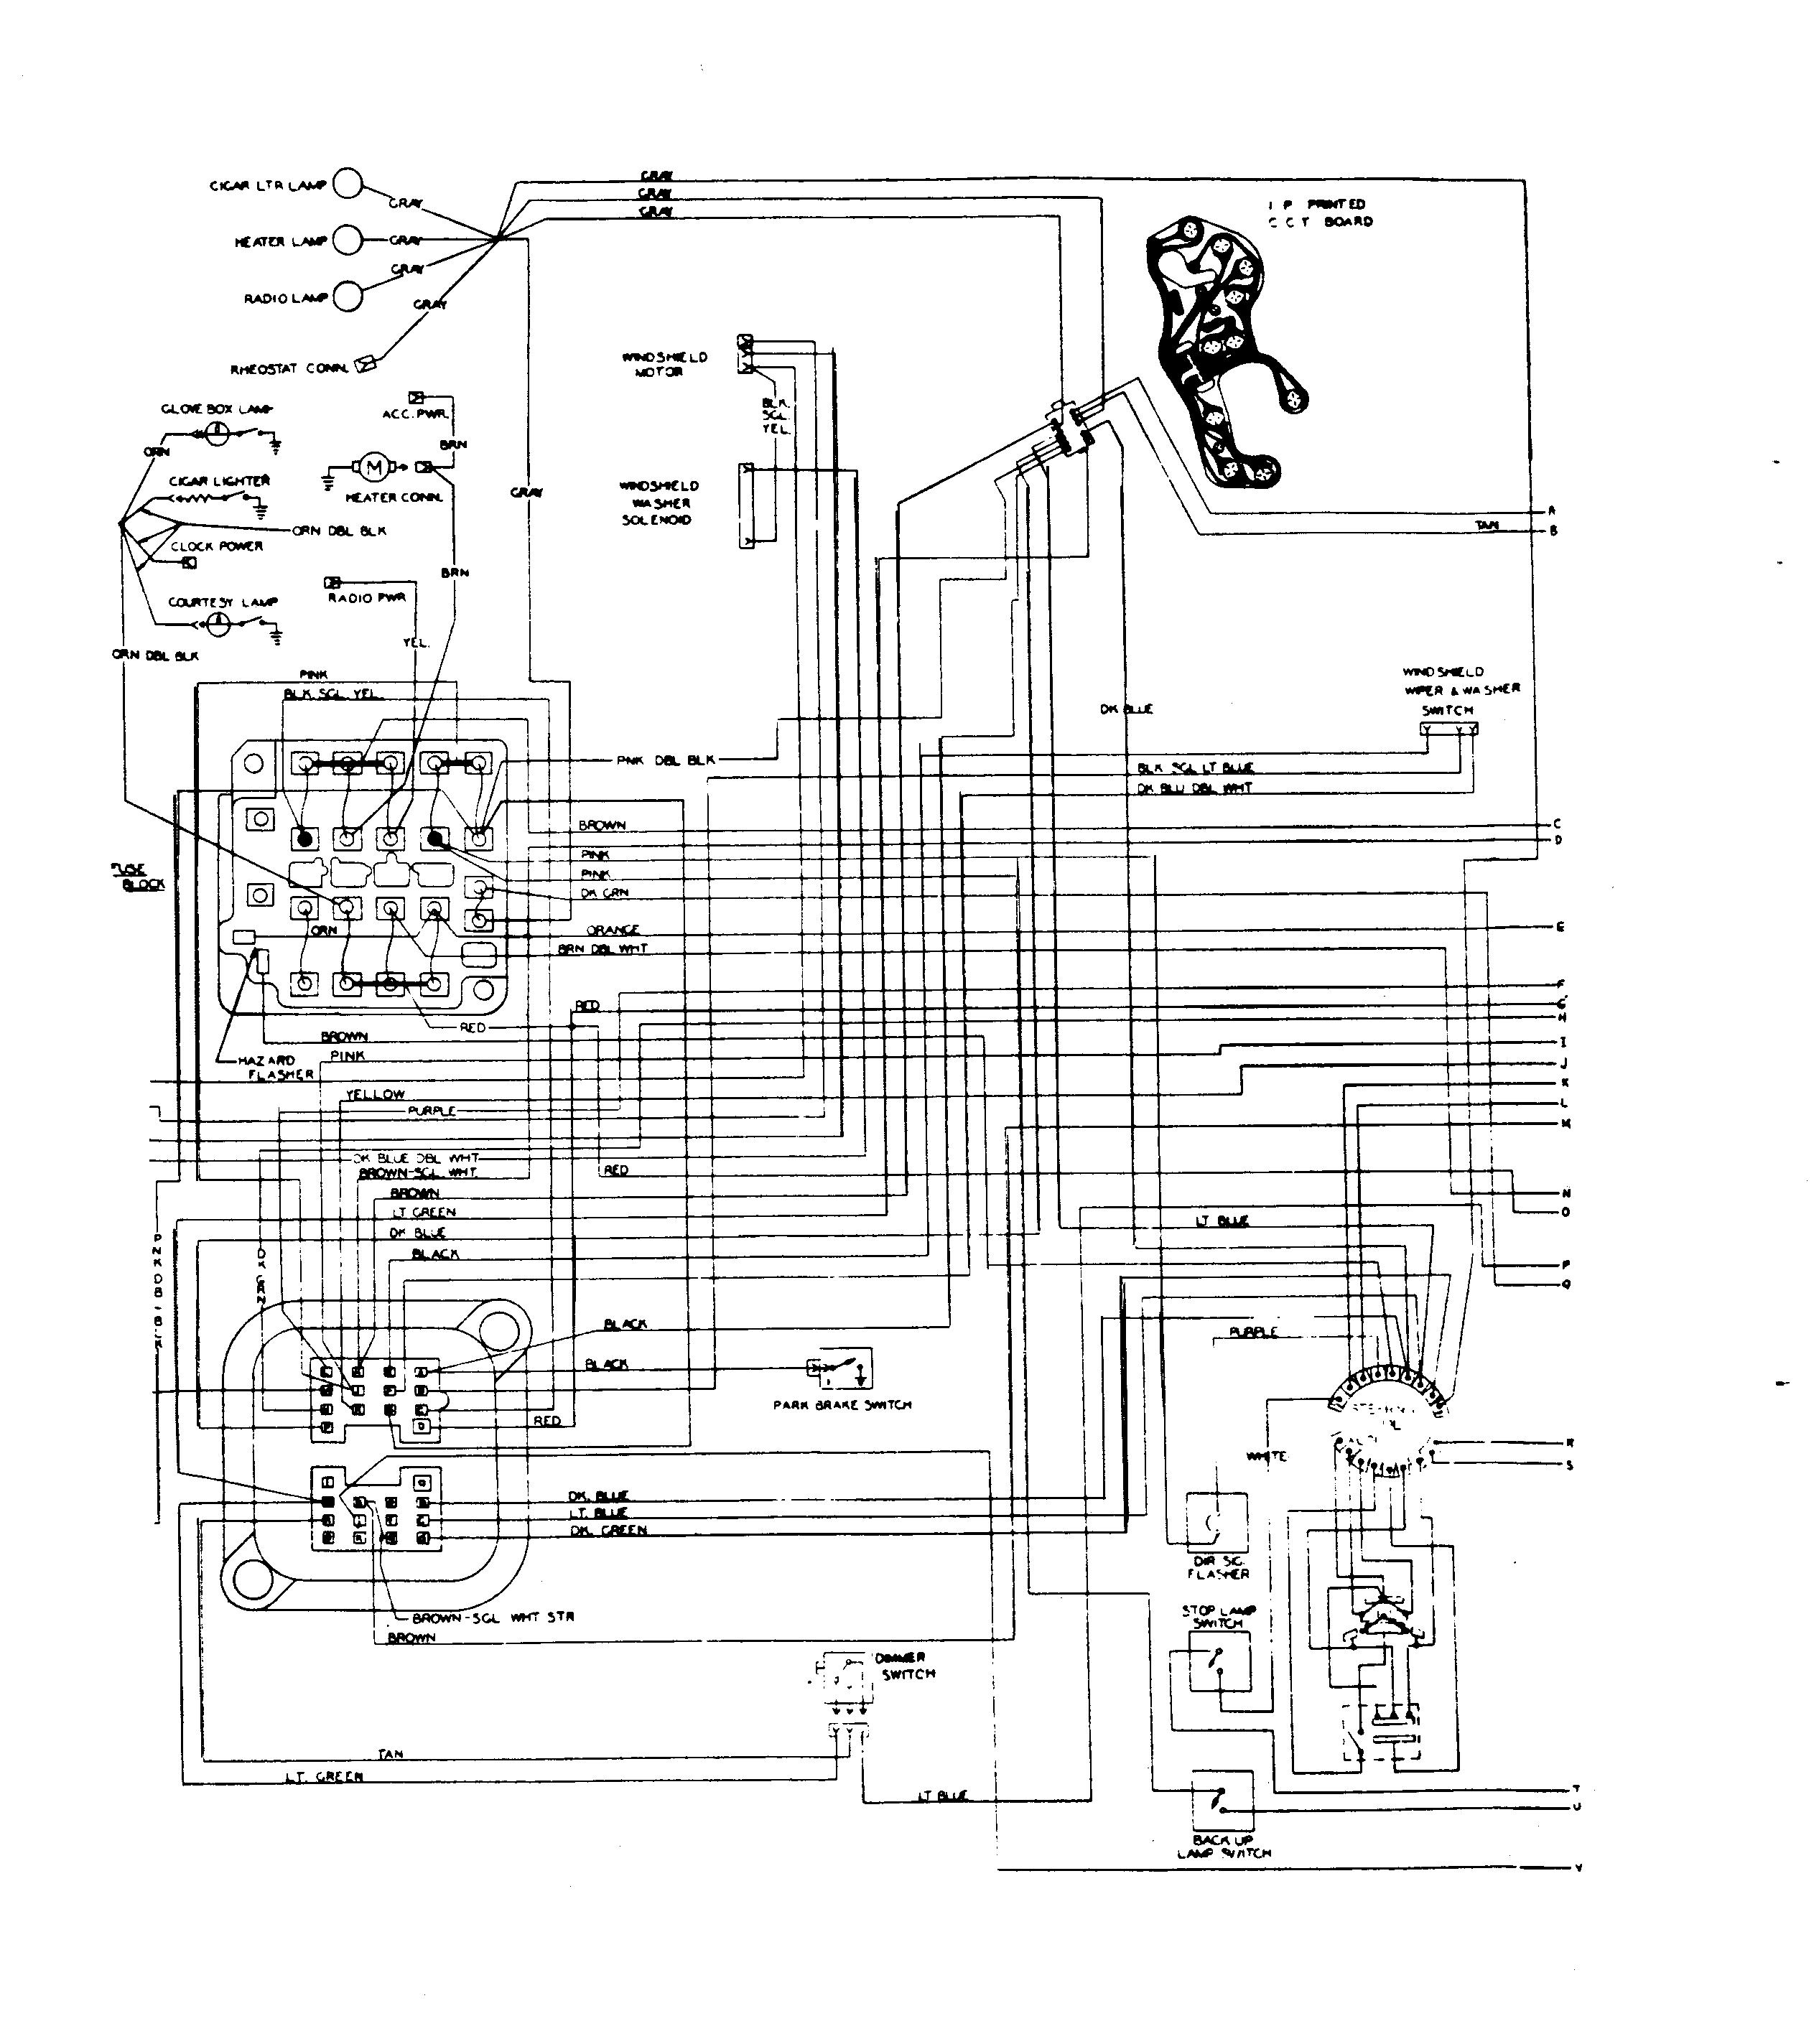 diagram] 1966 pontiac gto instrument wiring diagram full version hd quality wiring  diagram - monitordiagram.kine-margny.fr  monitordiagram.kine-margny.fr